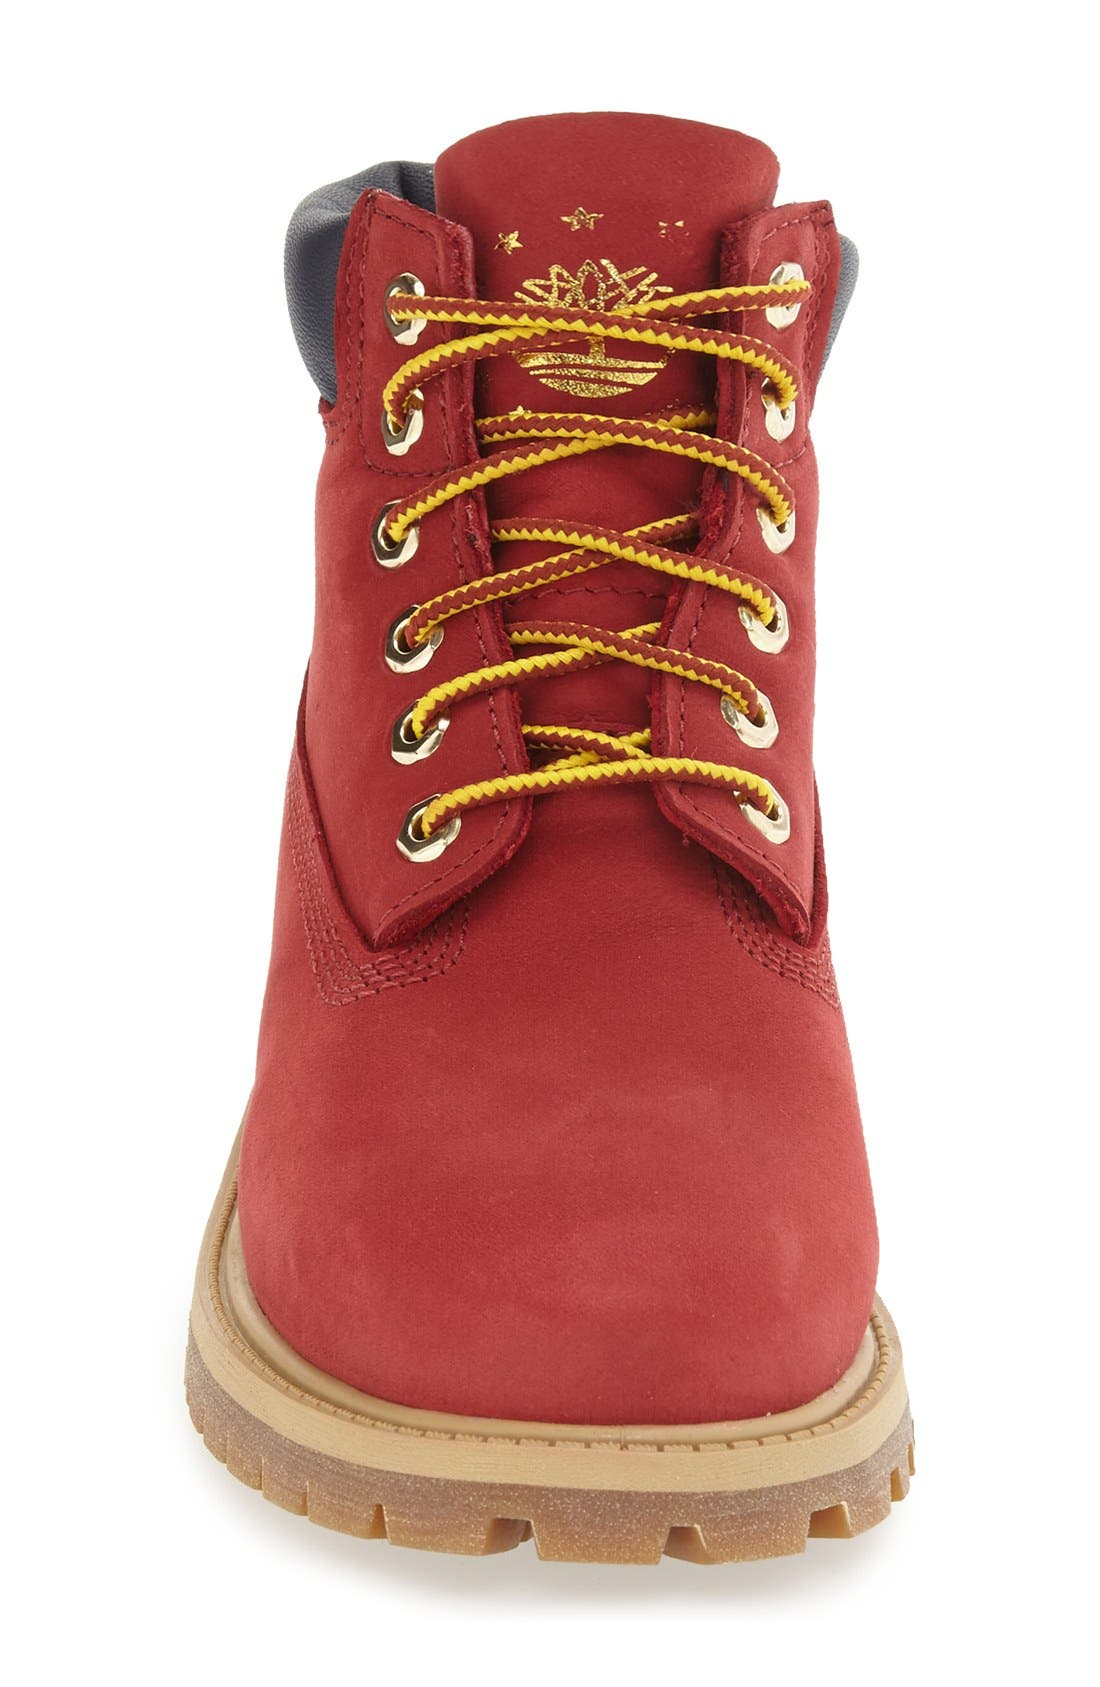 'Patriotic 6 Inch' Waterproof PrimaLoft<sup>®</sup> ECO Insulated Winter Boot,                             Alternate thumbnail 3, color,